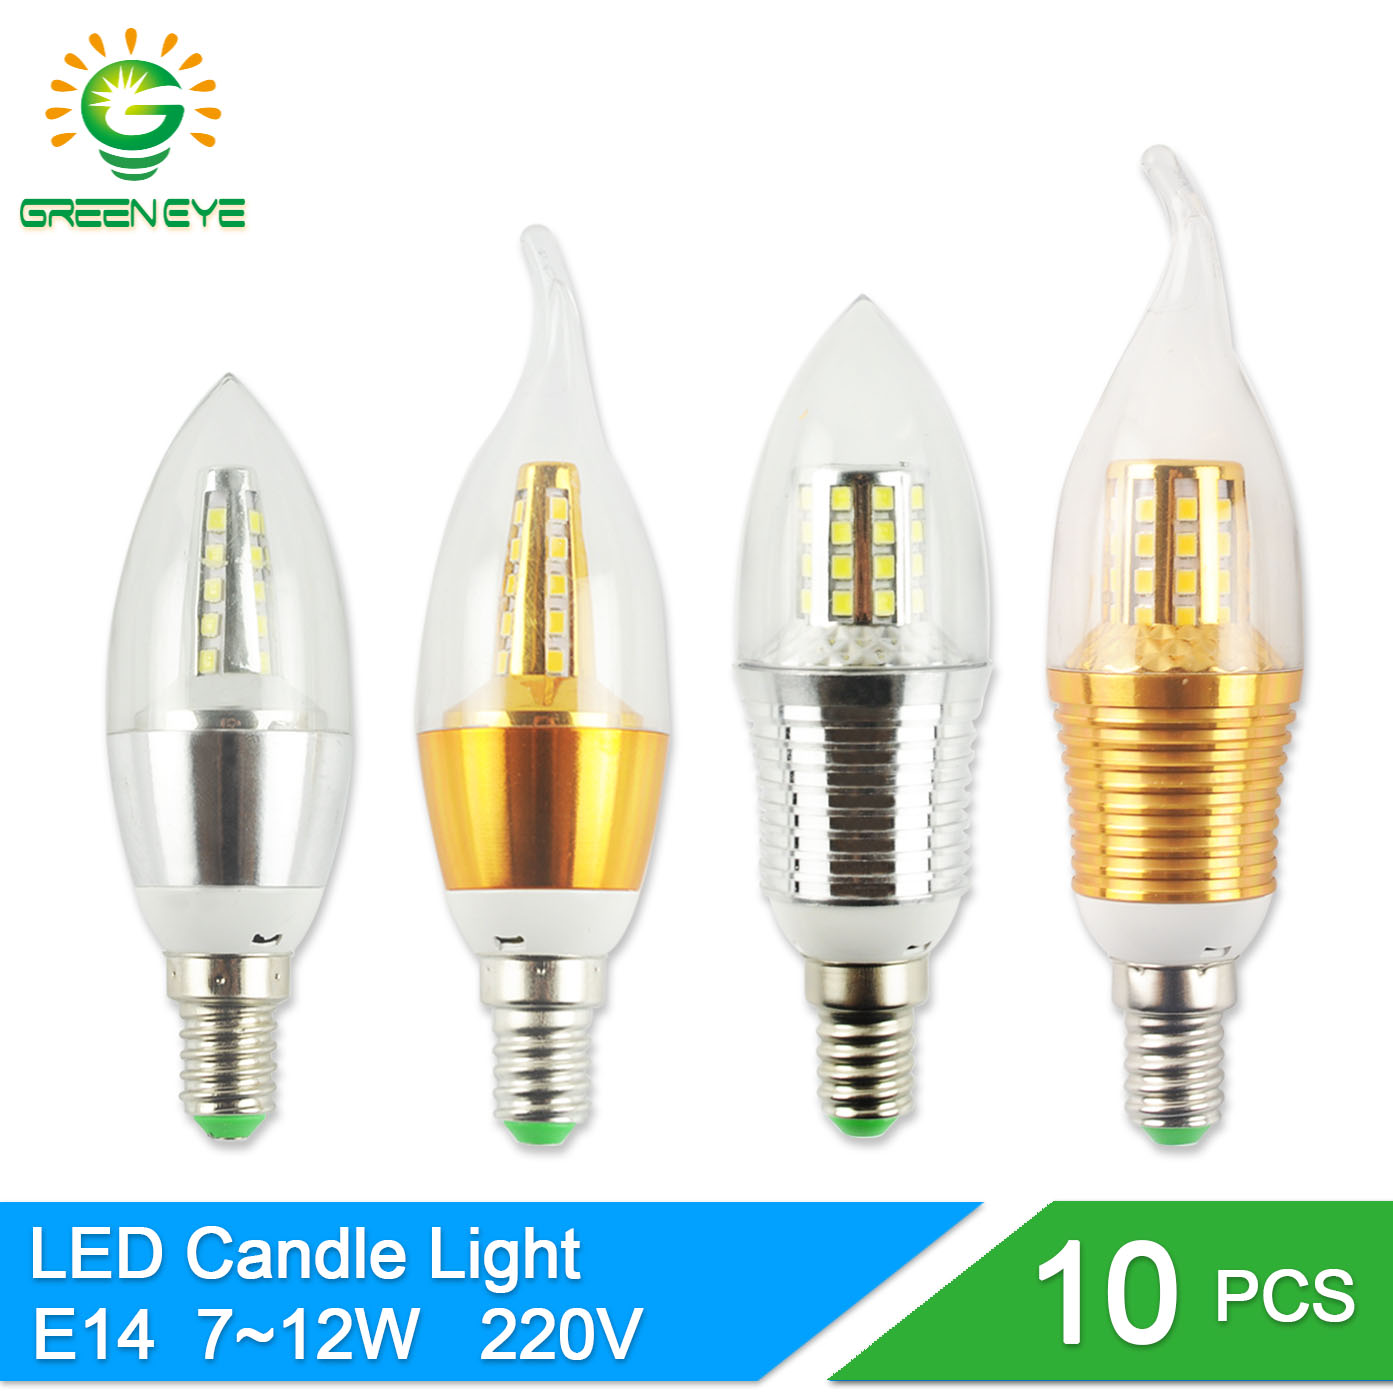 GreenEye 10Pcs LED E14 Bulb 220V 7W 9W 12W Golden Silver Aluminum Candle Lamp Light For Crystal Chandelier Lampara Ampoule candle led bulb e14 9w 12w aluminum shell e14 led light lamp 220v golden silver cool warm white ampoule lampara led smd 2835